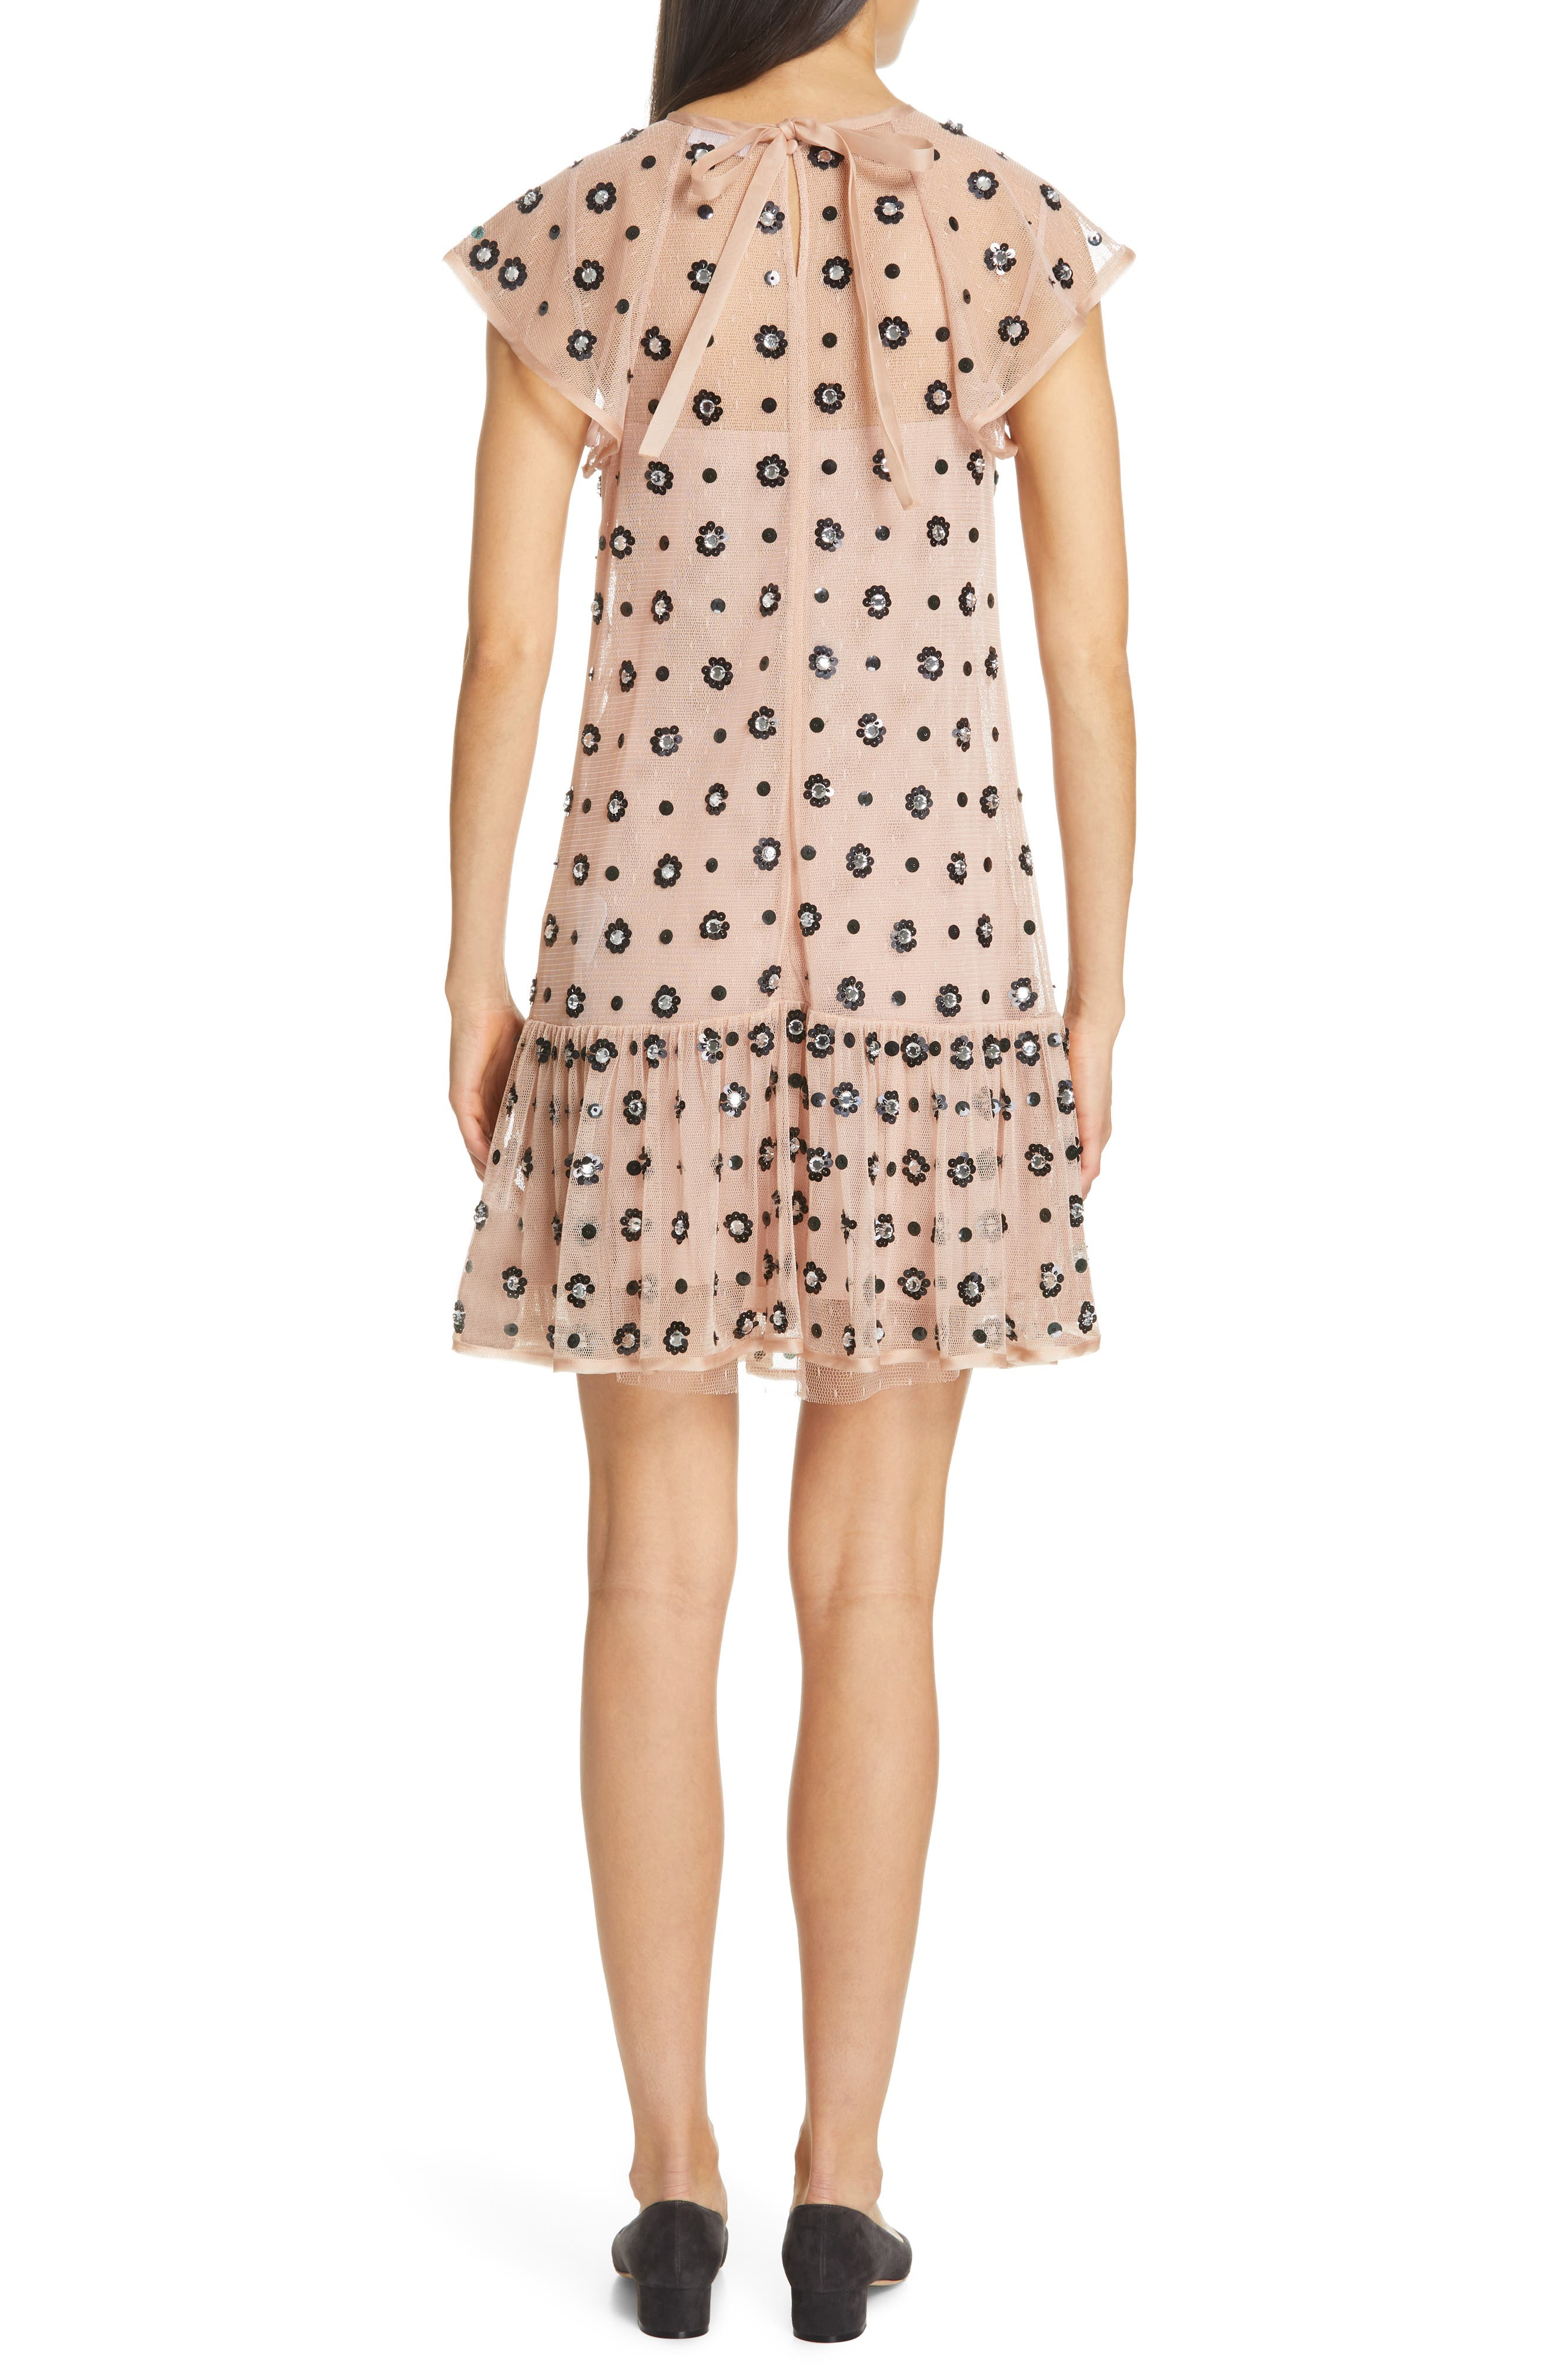 RED VALENTINO,                             Floral Sequin Drop Waist Dress,                             Alternate thumbnail 2, color,                             NUDO